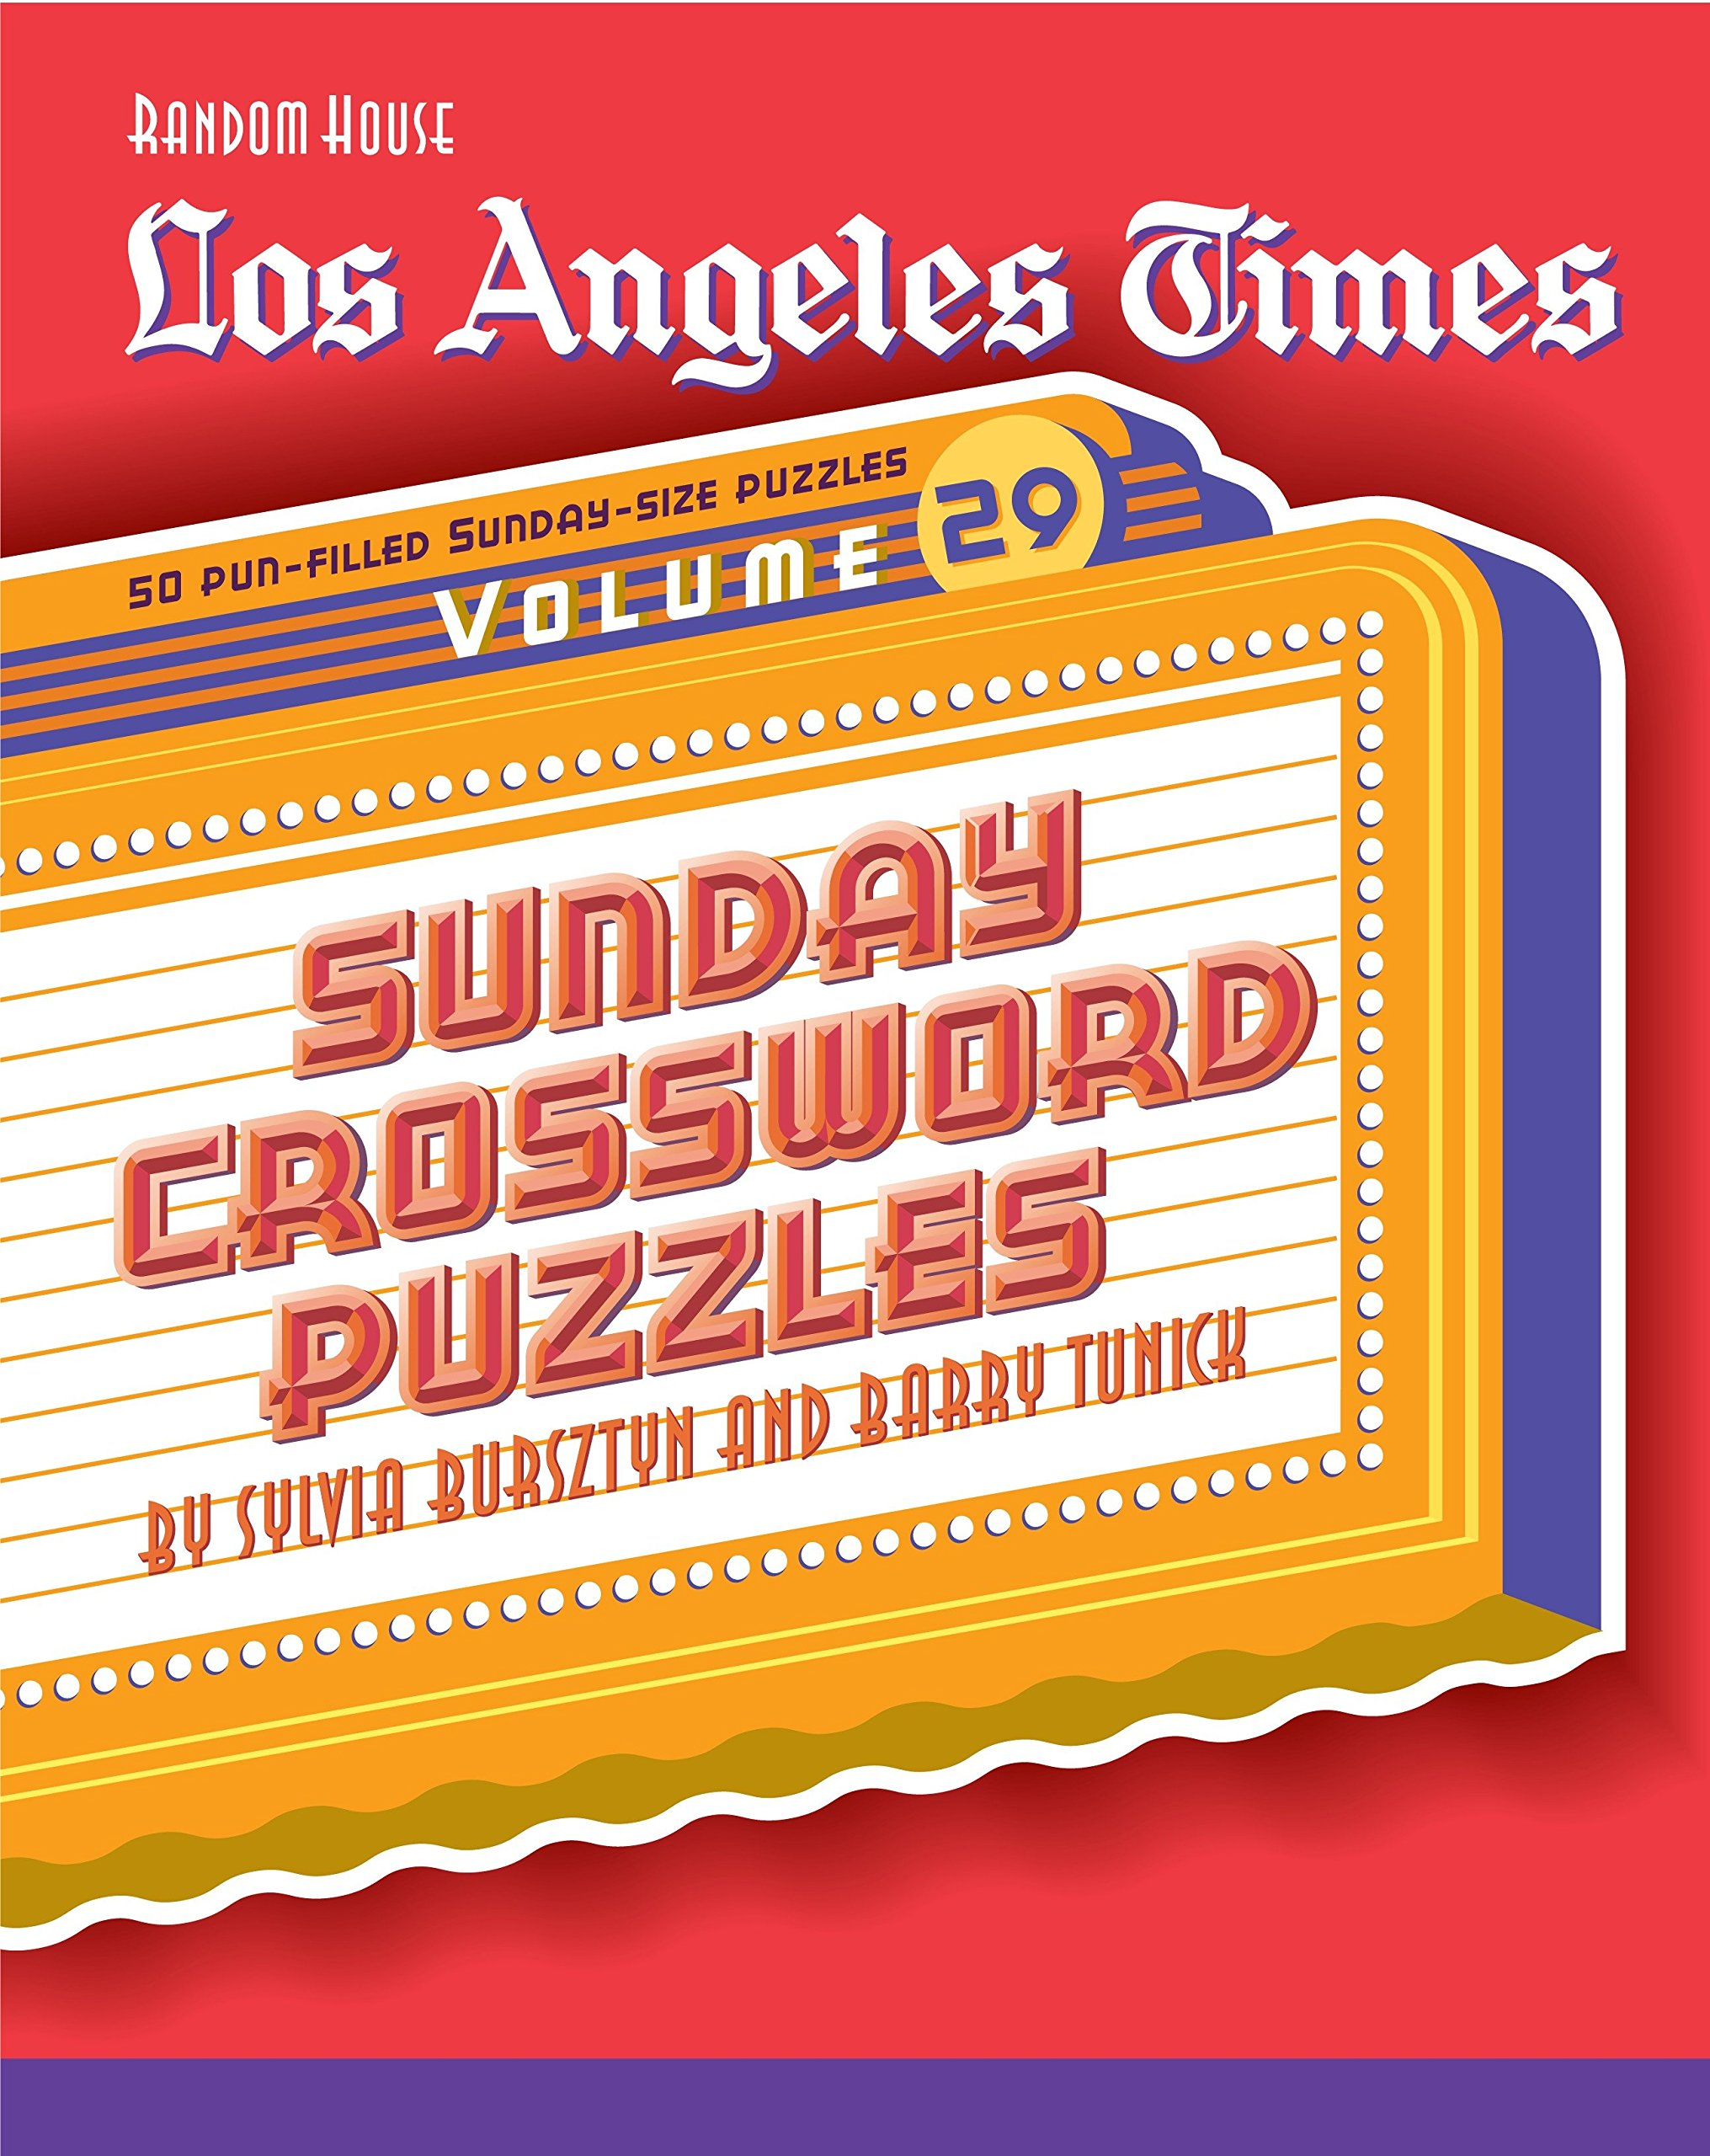 photo relating to Printable Crossword Puzzles La Times known as Los Angeles Periods Sunday Crossword Puzzles, Sum 29 (The